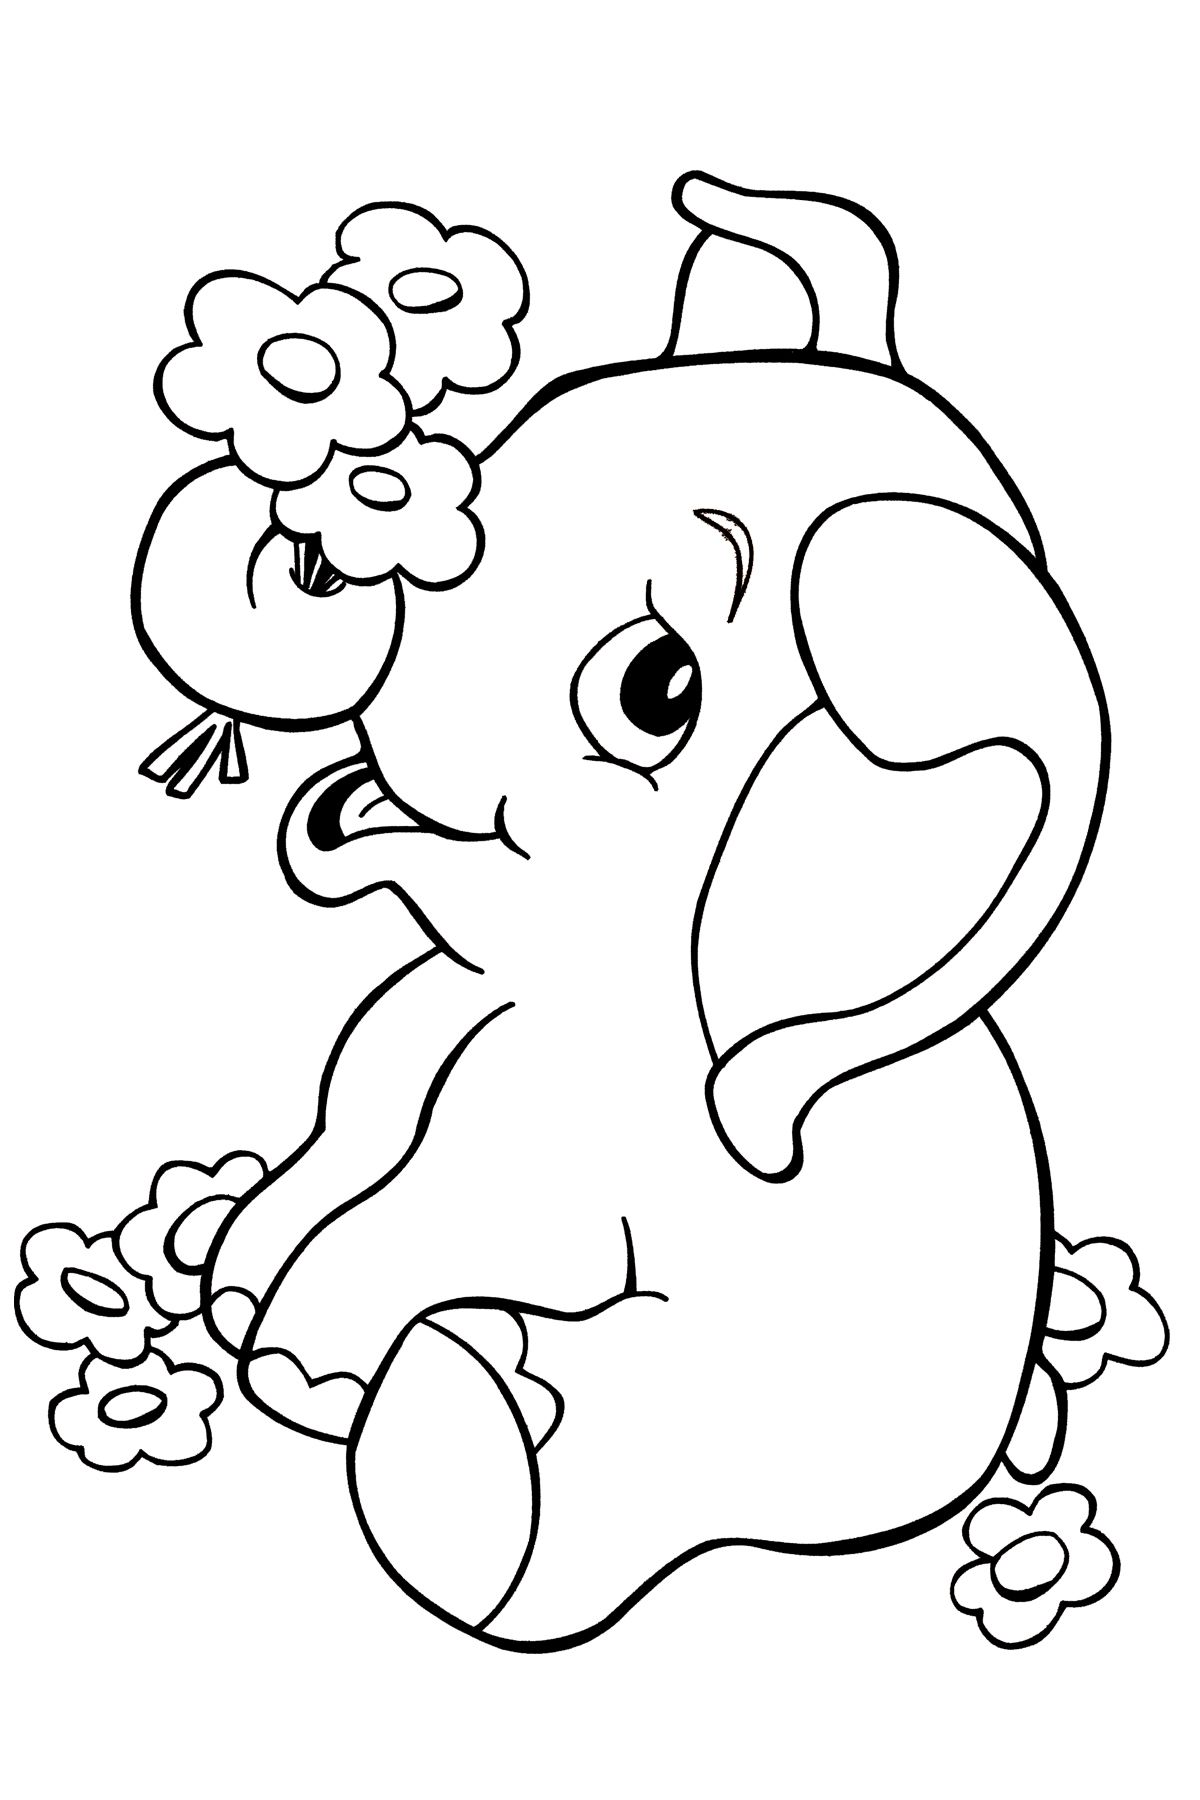 free baby animal coloring pages coloring pages jungle animals luxury awesome baby jungle pages coloring animal baby free